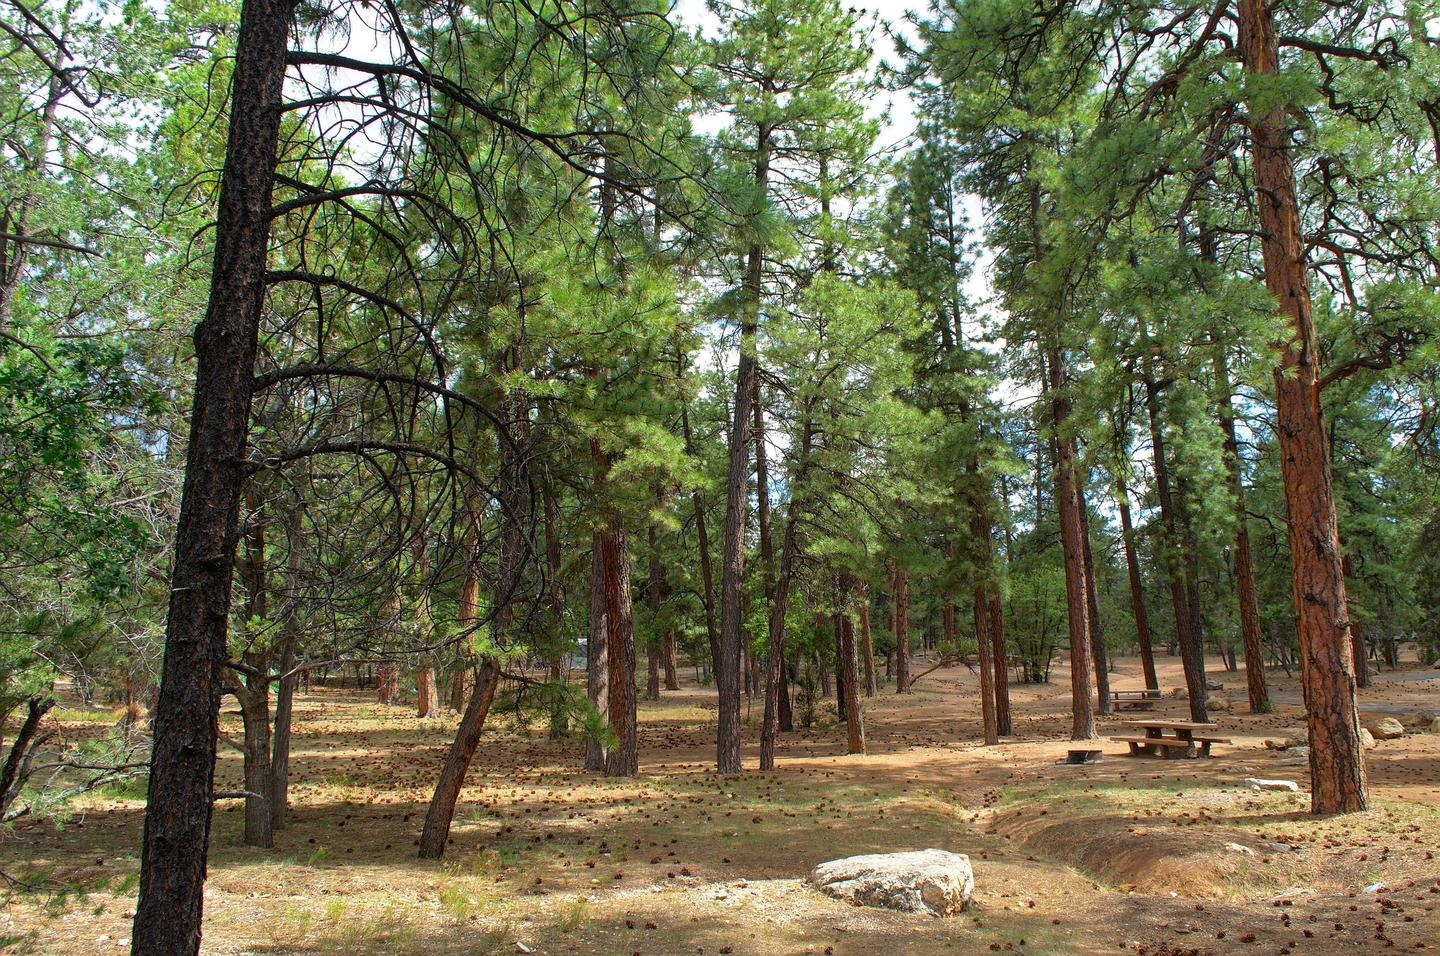 Campsites in Aspen and Fir Loops, Mather Campground